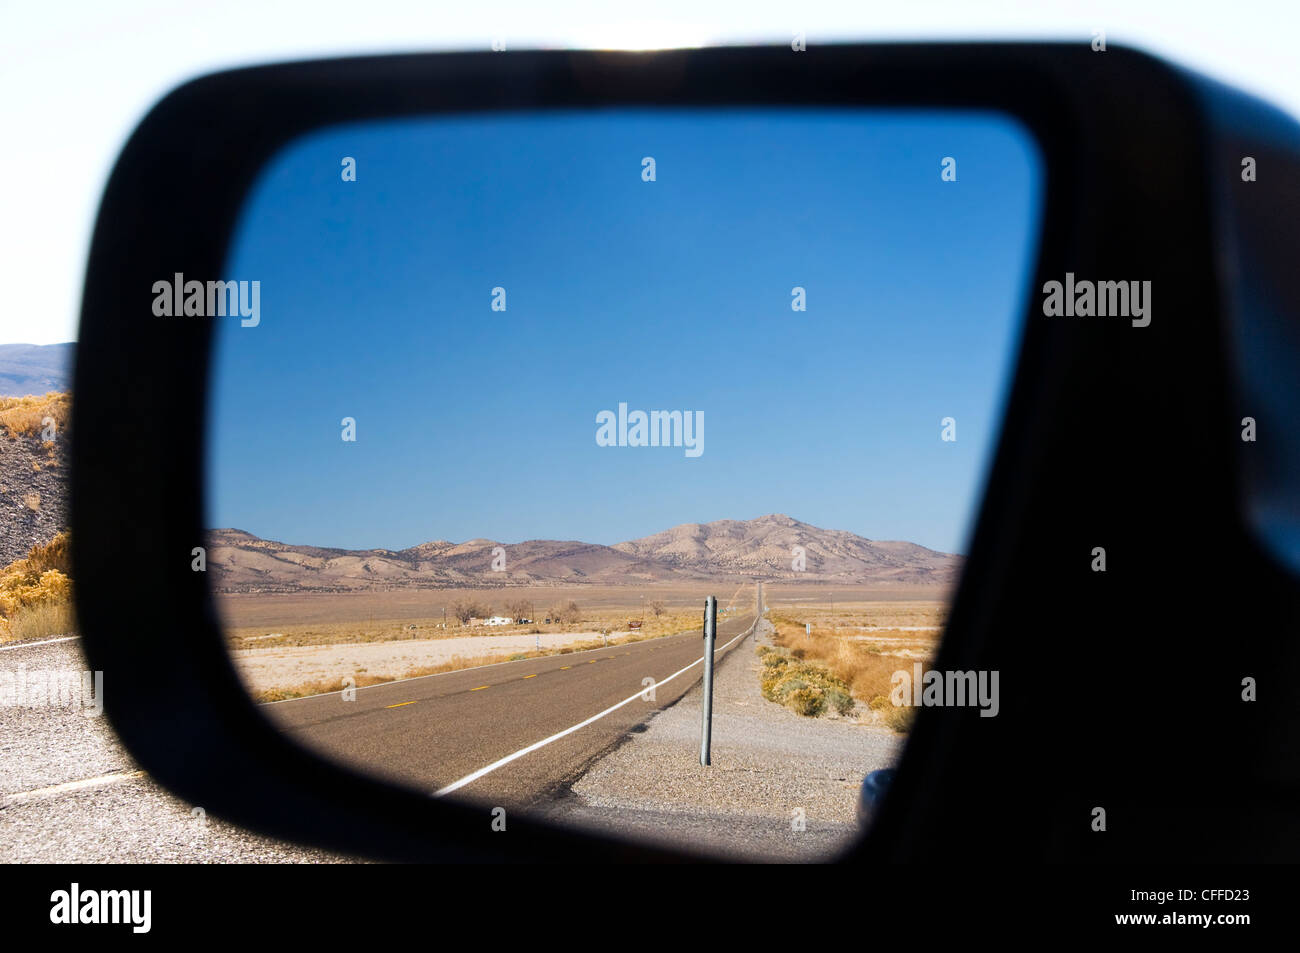 Highway 50 in Nevada, better known as the Loneliest Road in America, is reflected in a rearview mirror. - Stock Image